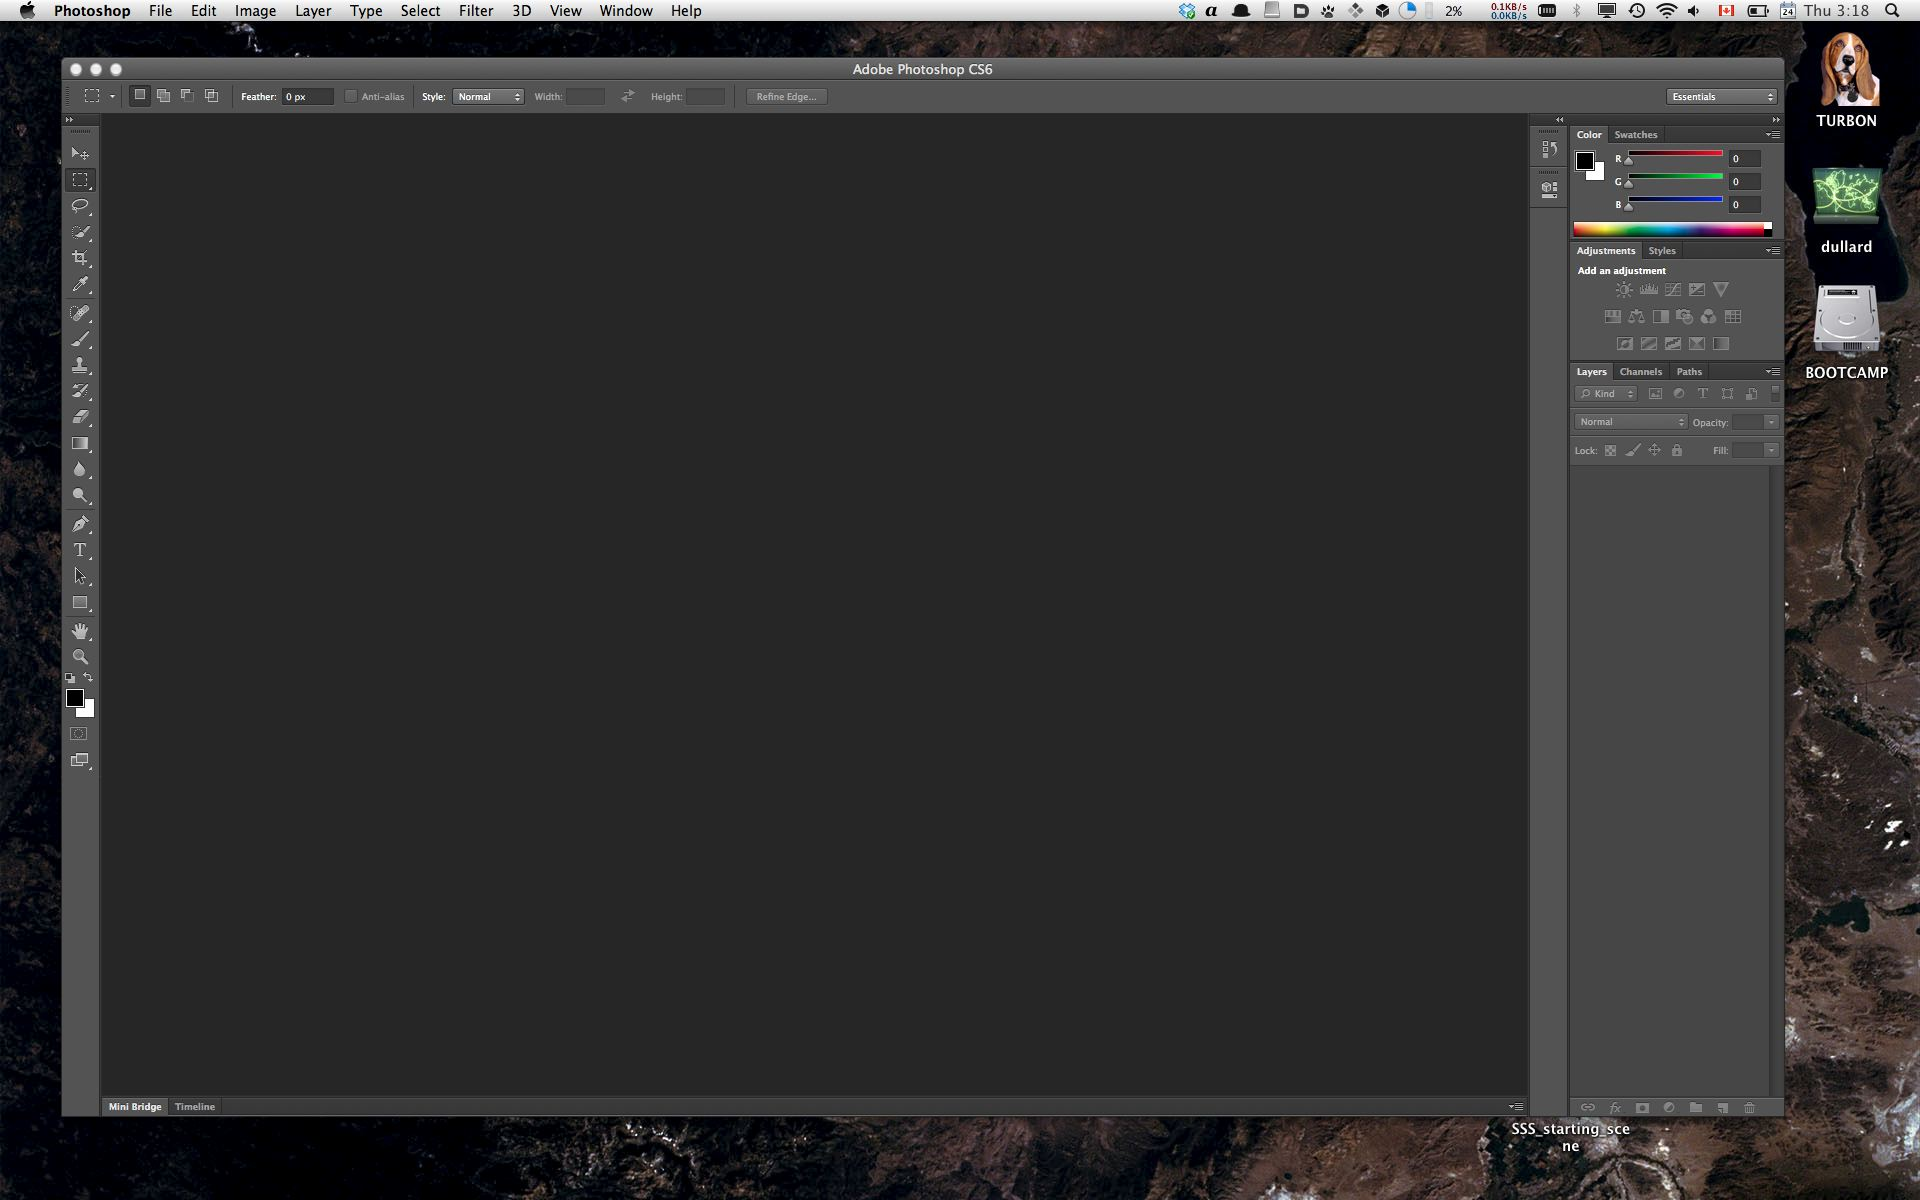 Review adobe photoshop cs6 and the creative cloud ars technica enlarge ccuart Choice Image